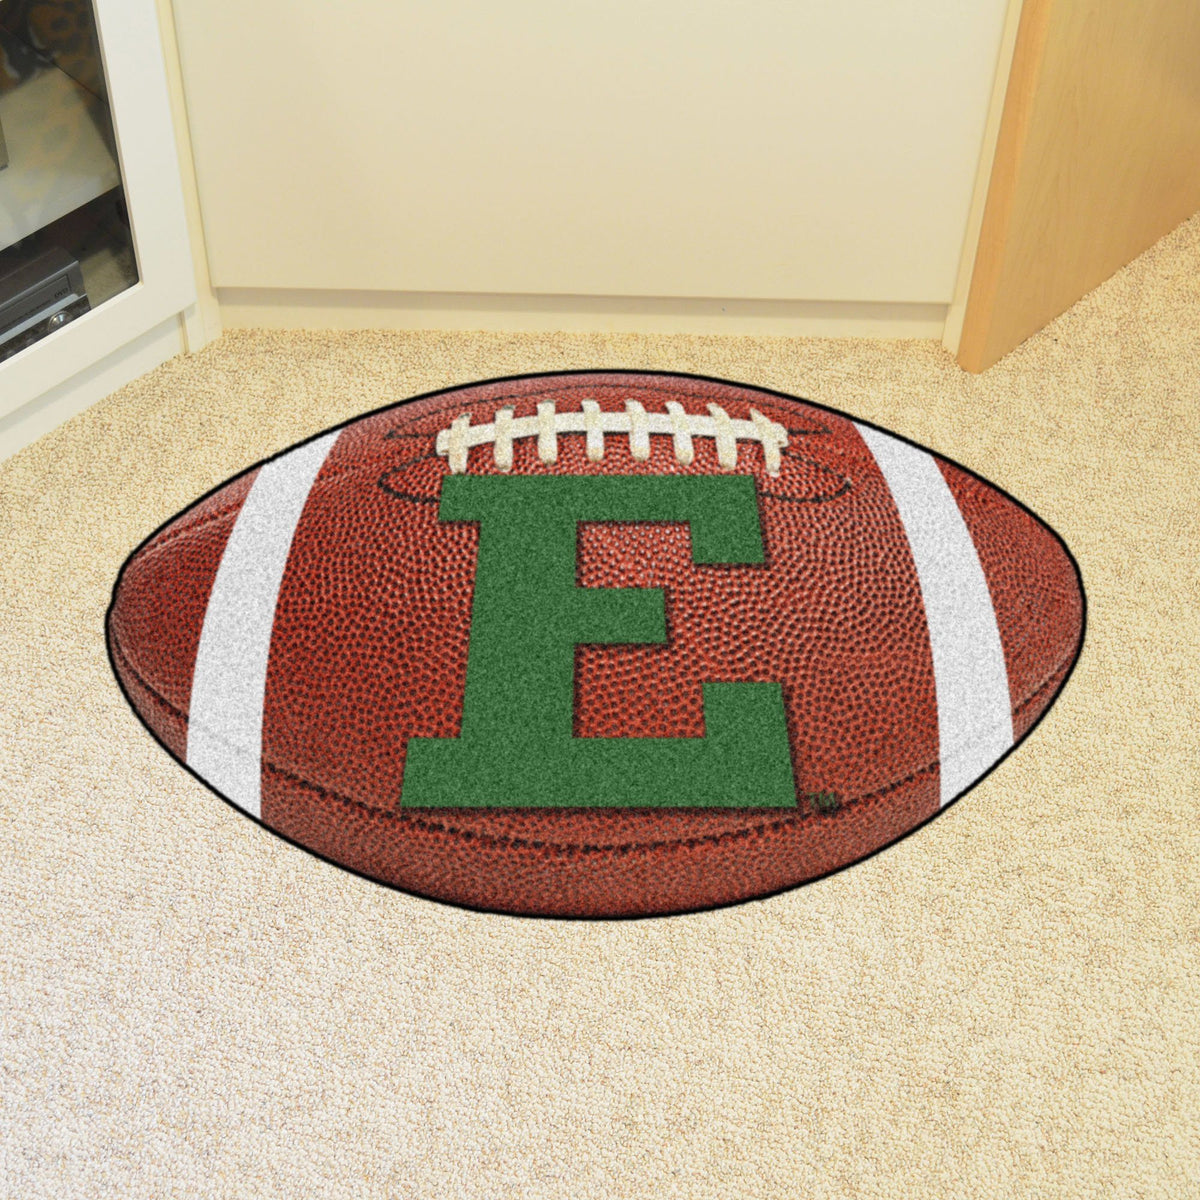 Collegiate - Football Mat: A - K Collegiate Mats, Rectangular Mats, Football Mat, Collegiate, Home Fan Mats Eastern Michigan